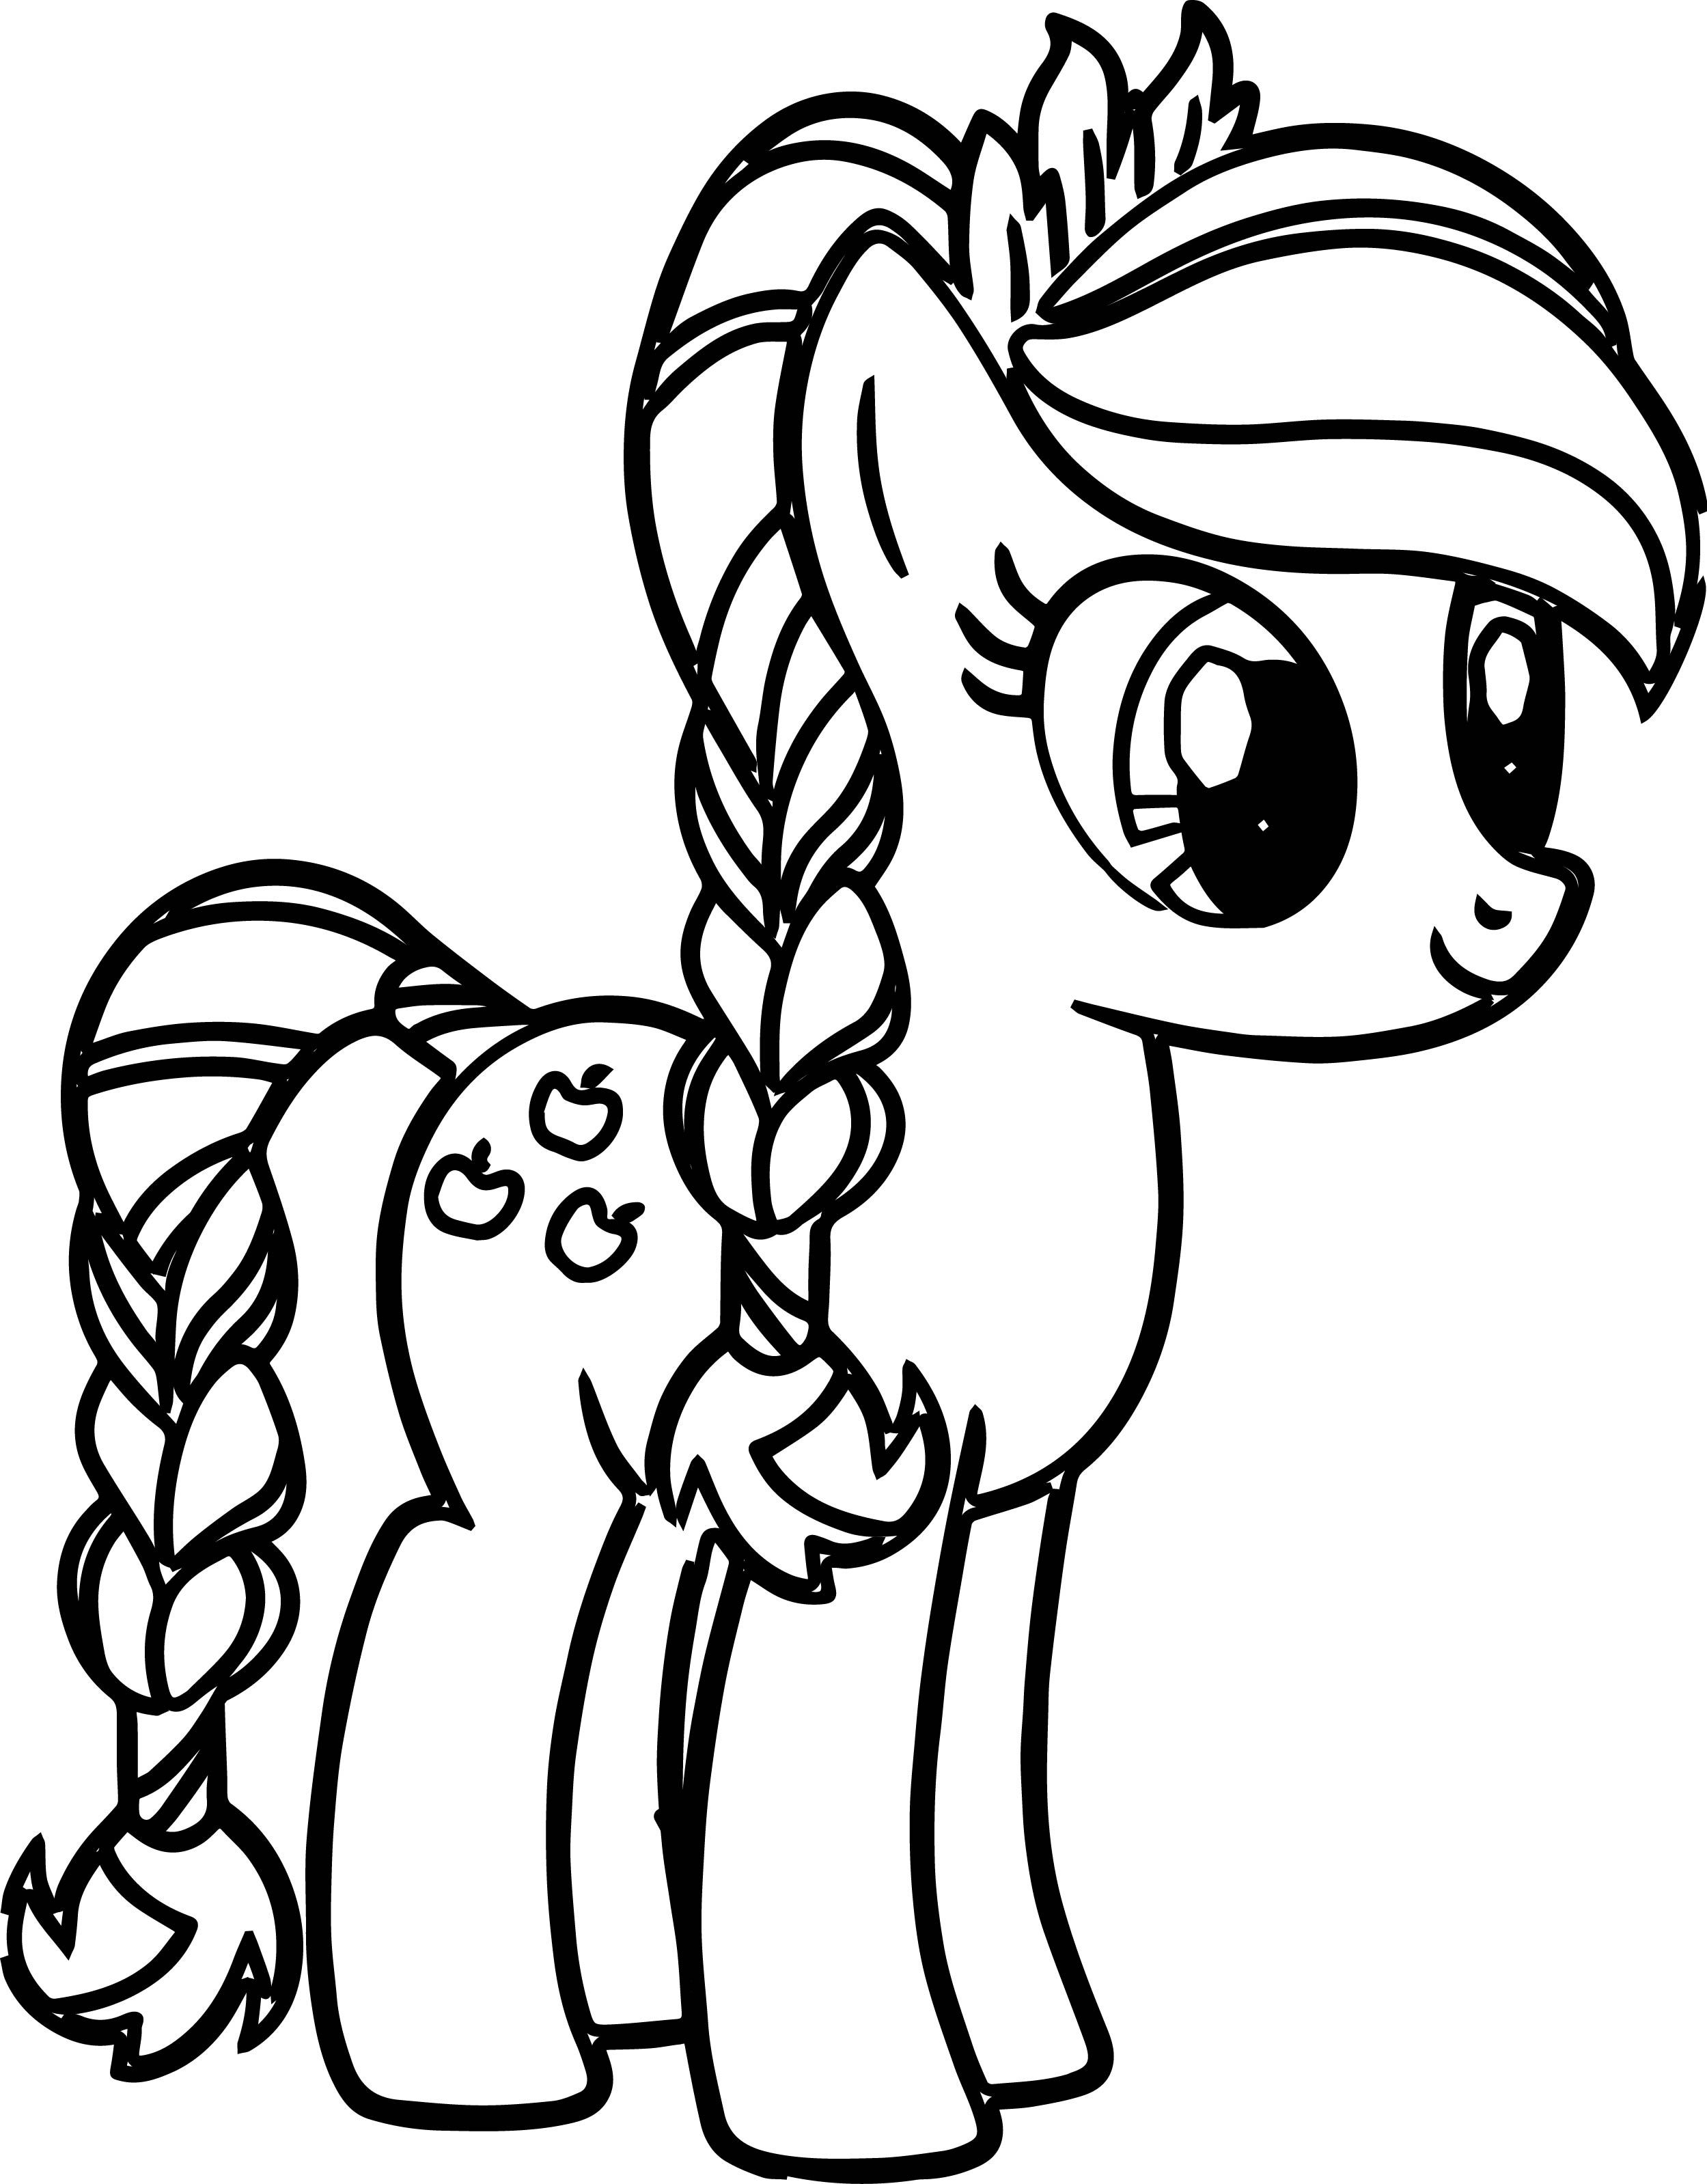 Pony Cartoon My Little Pony Coloring Pages | Printables | Pinterest ...